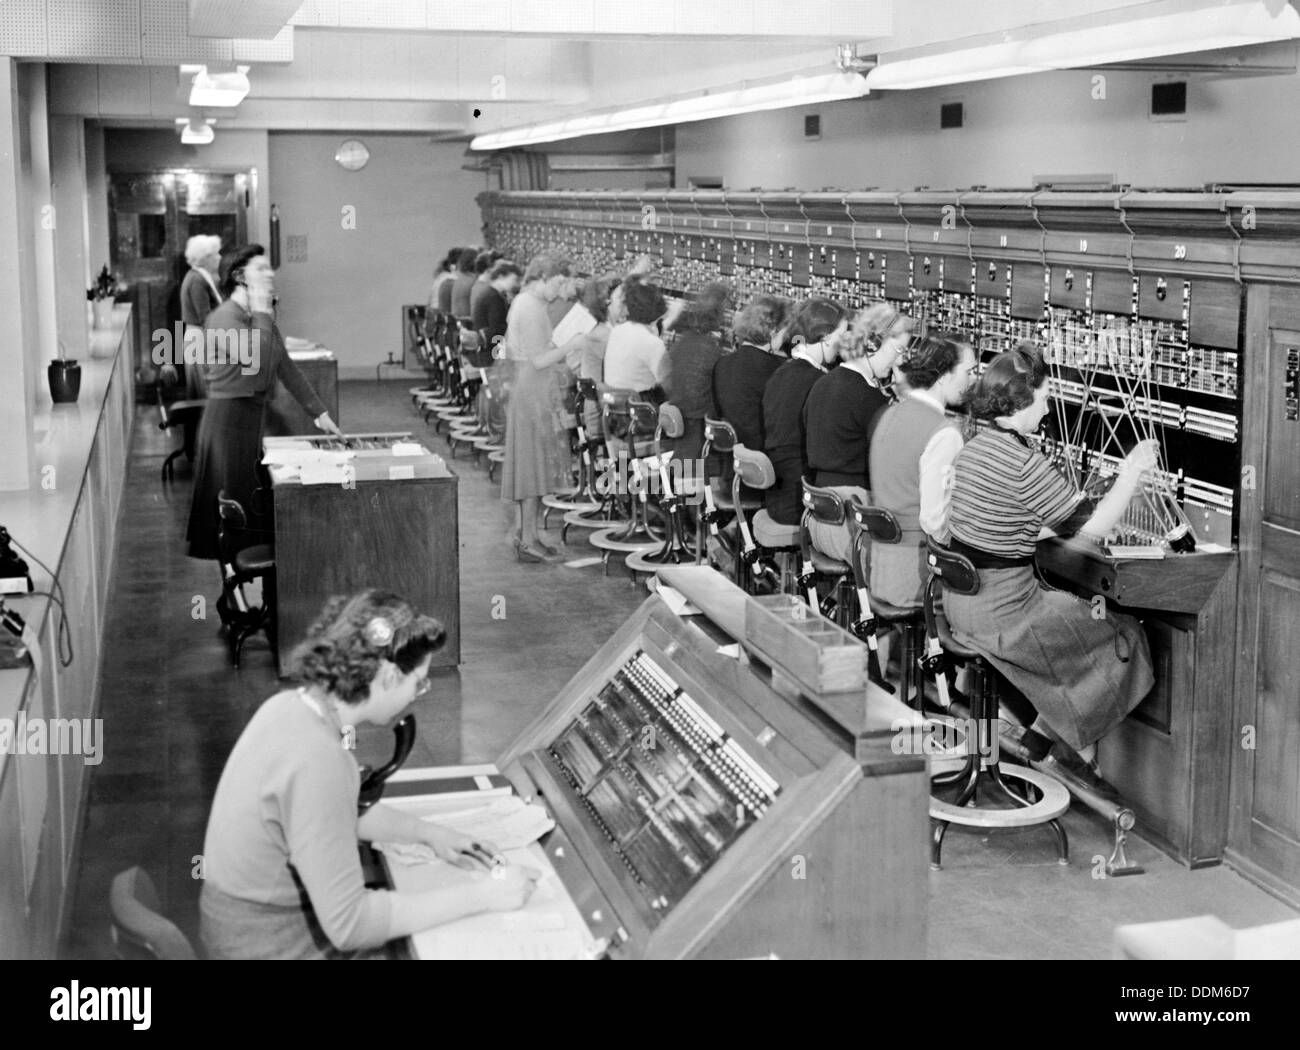 Telephone exchange at Cadley Hall, London, March 1951. - Stock Image